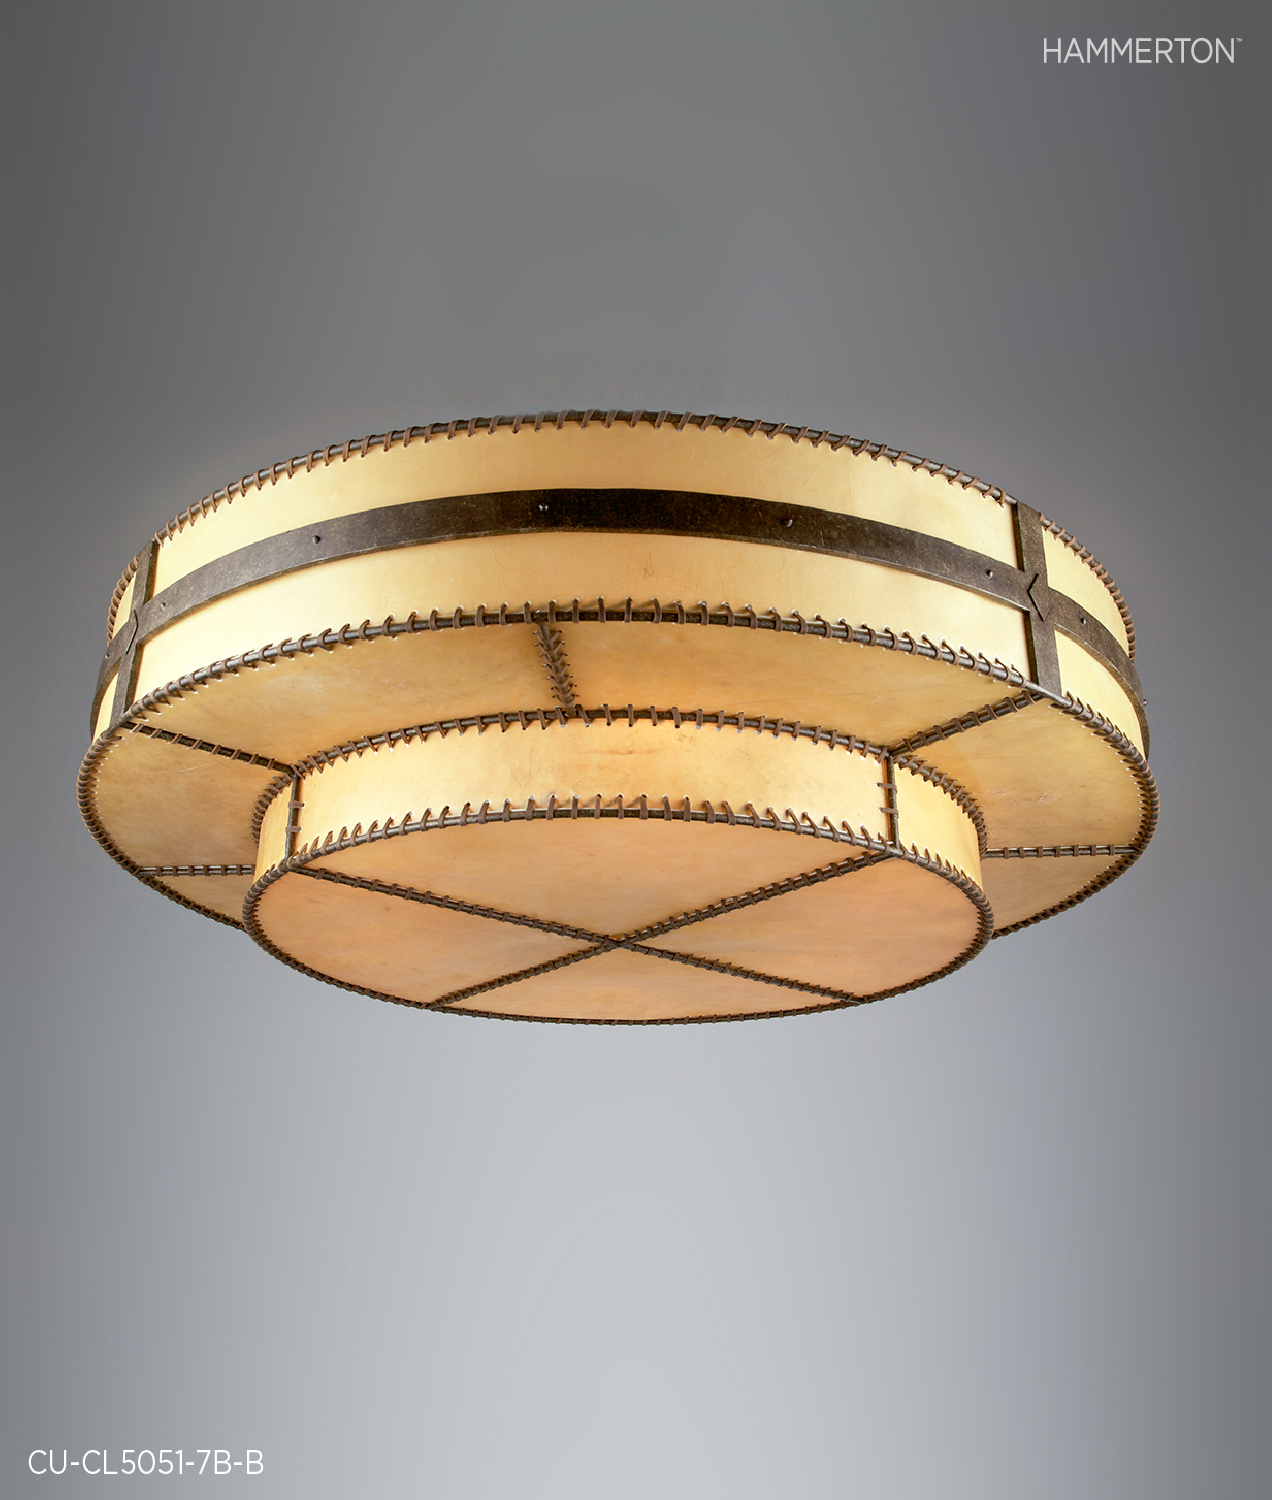 A striking 5 ft dia Rawhide custom Log and Timber ceiling light with leather lashing in an Antique Bronze finish.  Fixture: CU-CL5051-7B-B